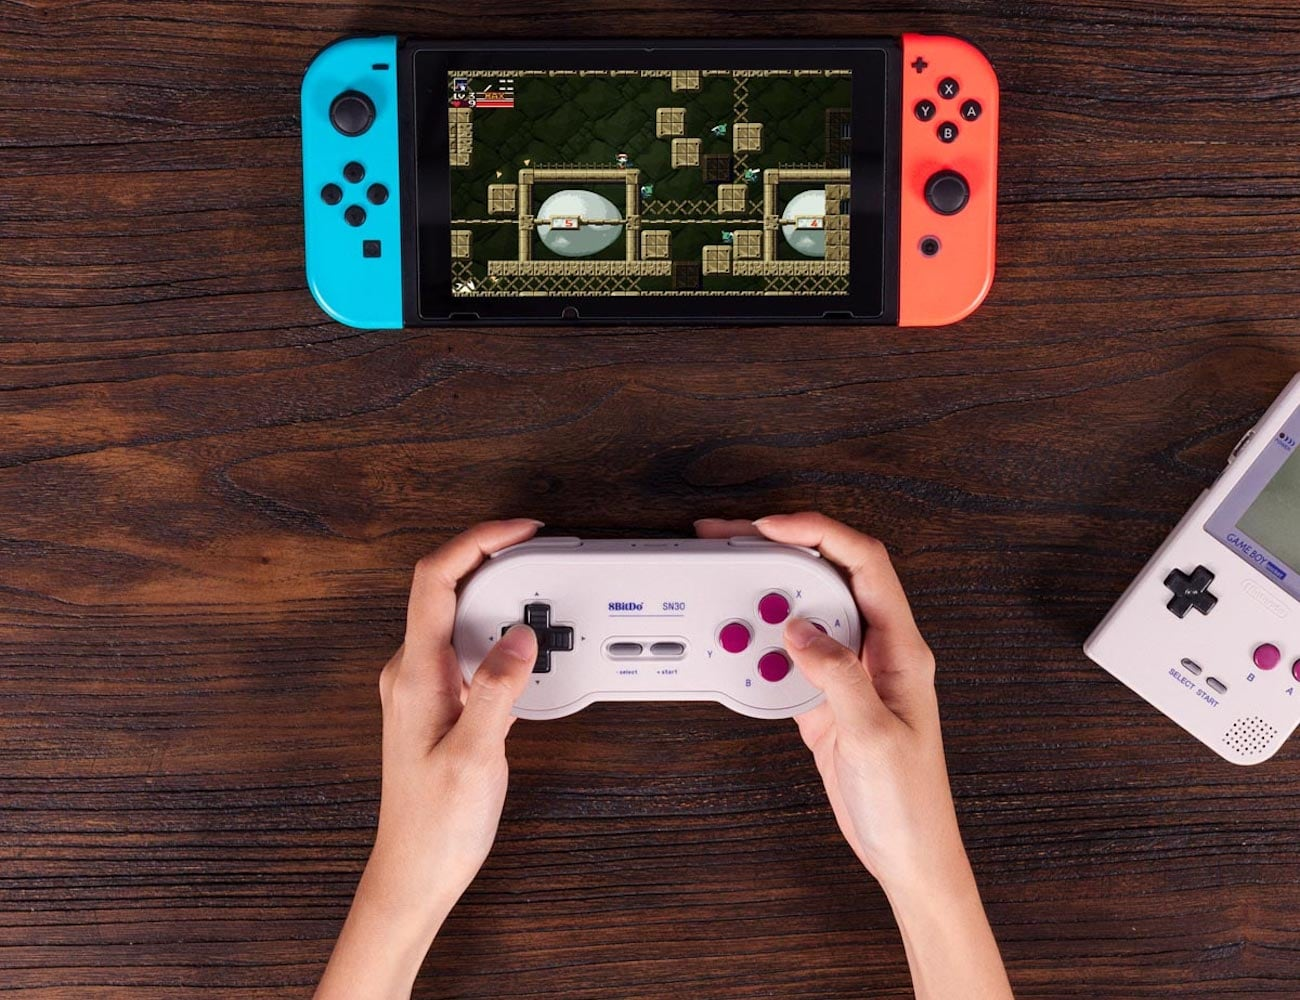 8BitDo SN30 GP Wireless Bluetooth Gamepad has great battery life for your long gaming sessions